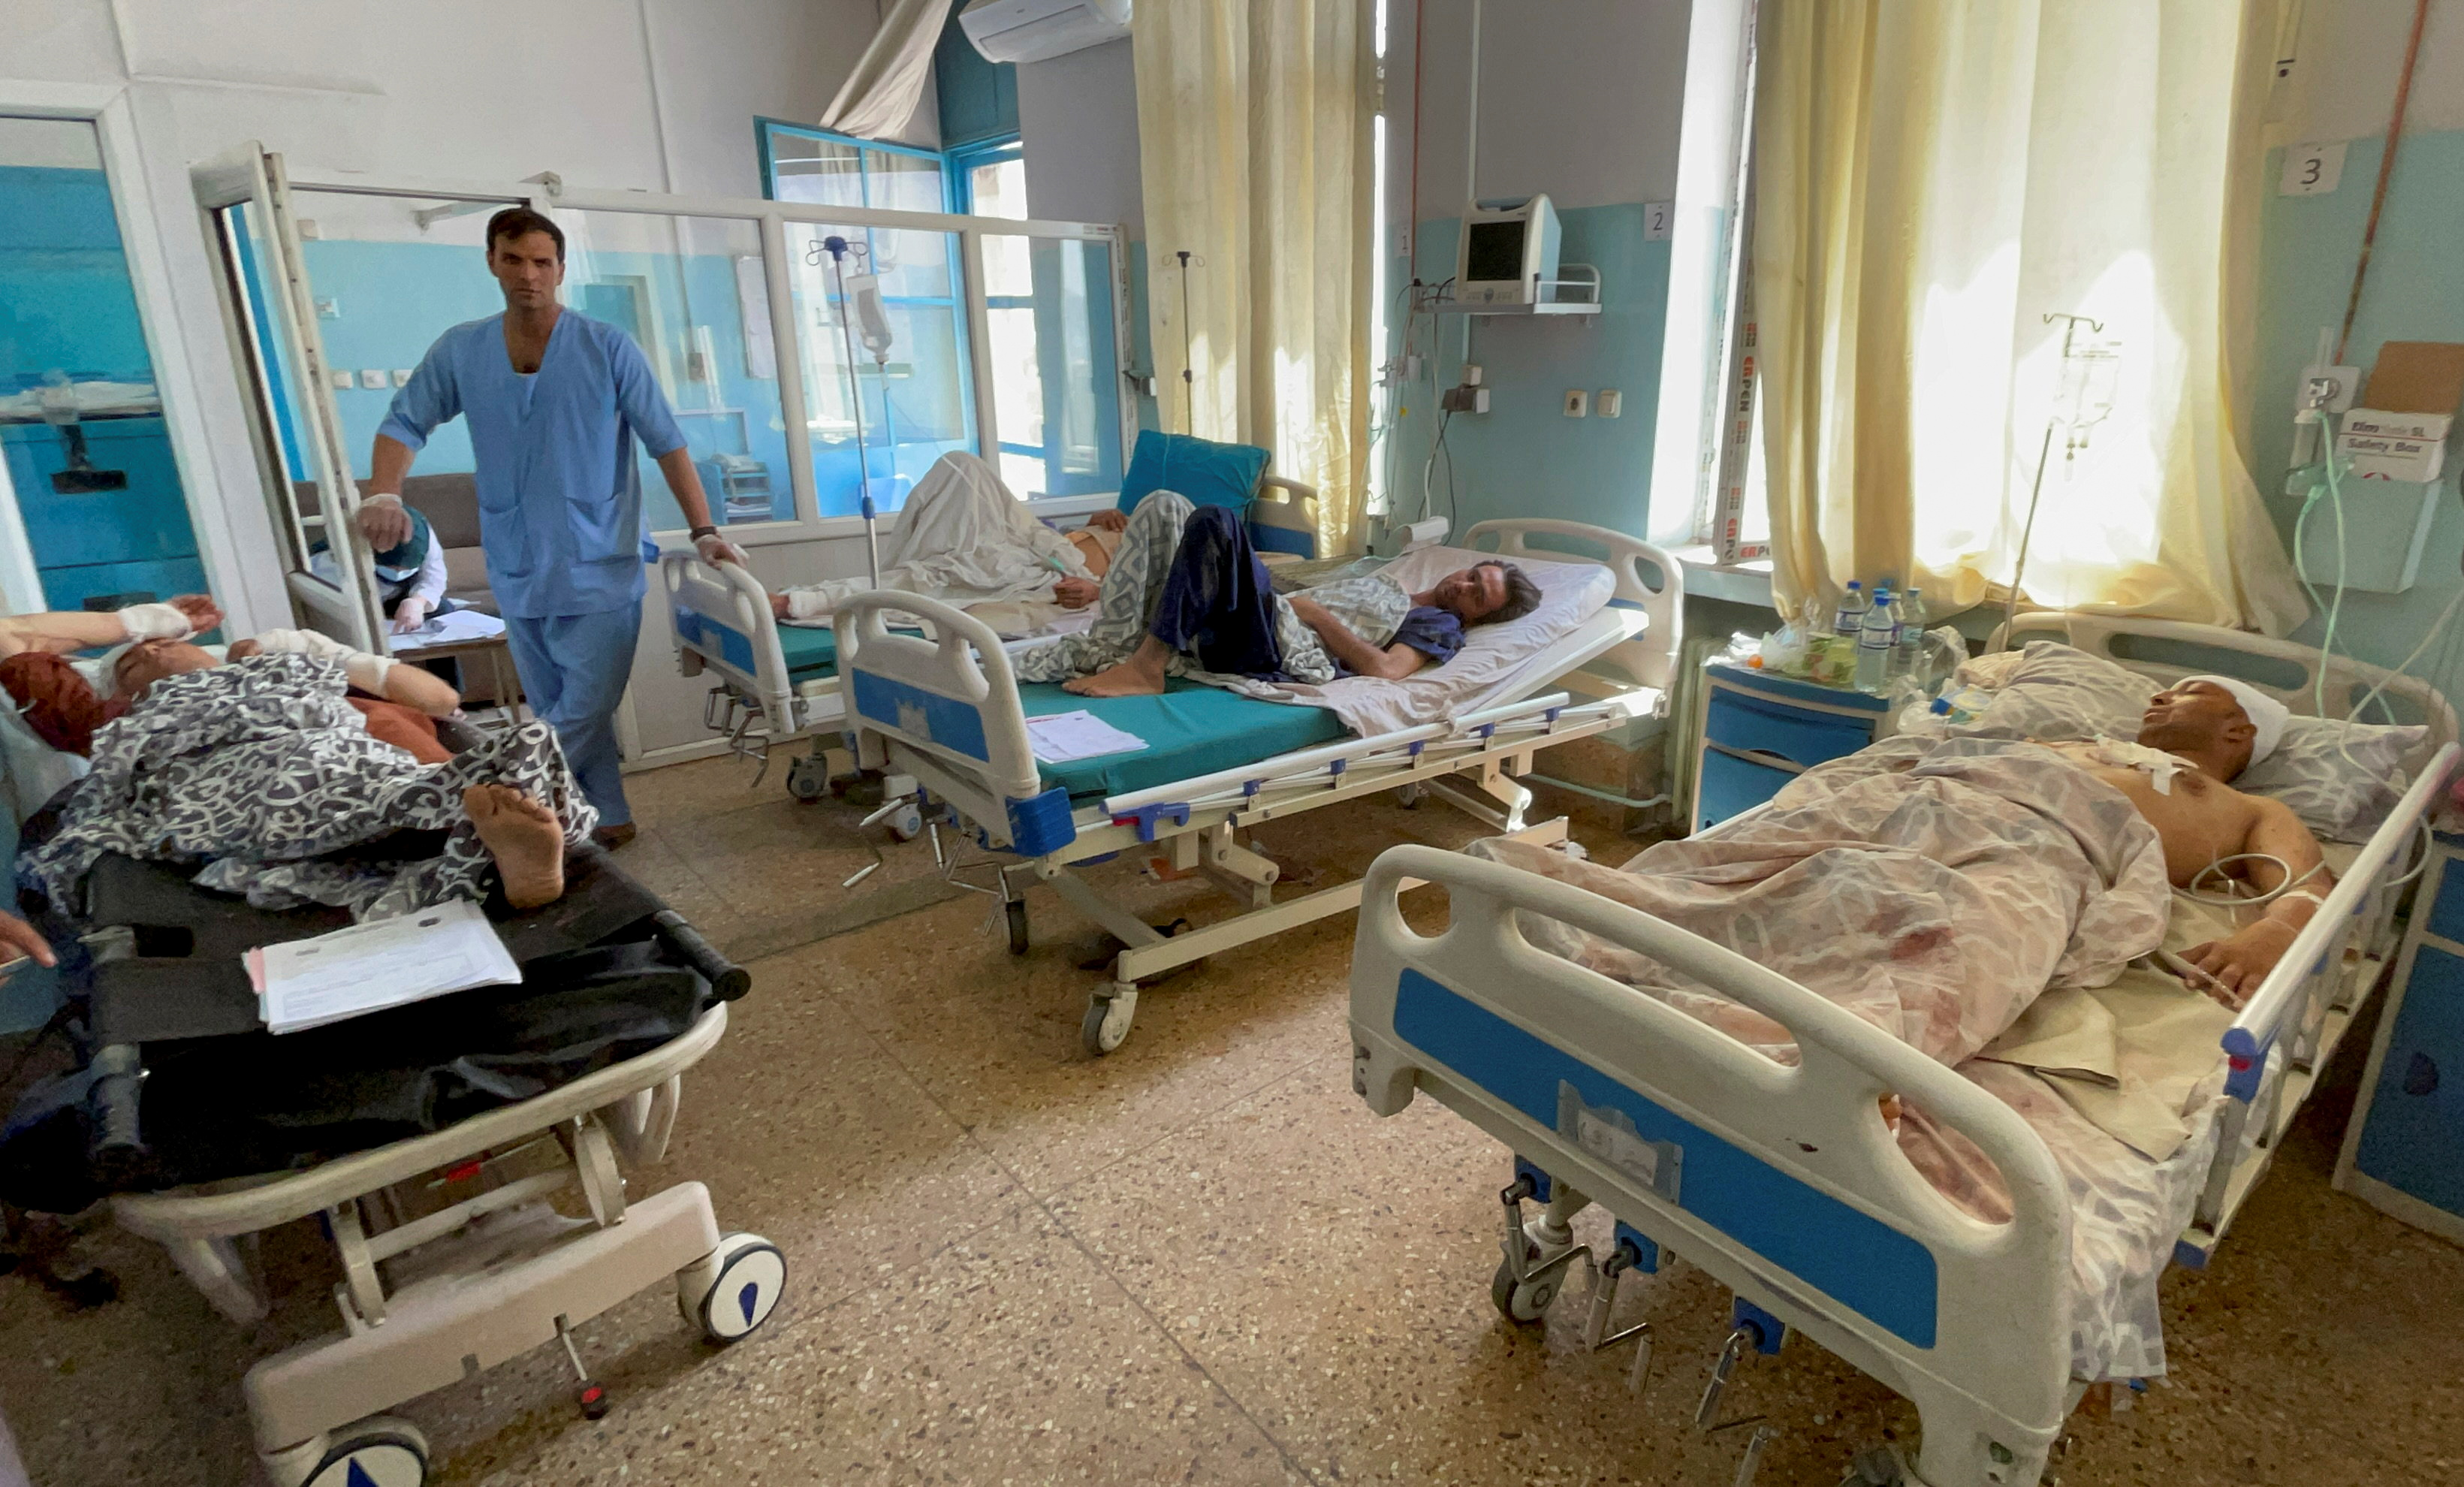 Wounded Afghan men receive treatment at a hospital after yesterday's explosions outside airport in Kabul, Afghanistan August 27, 2021. REUTERS/Stringer